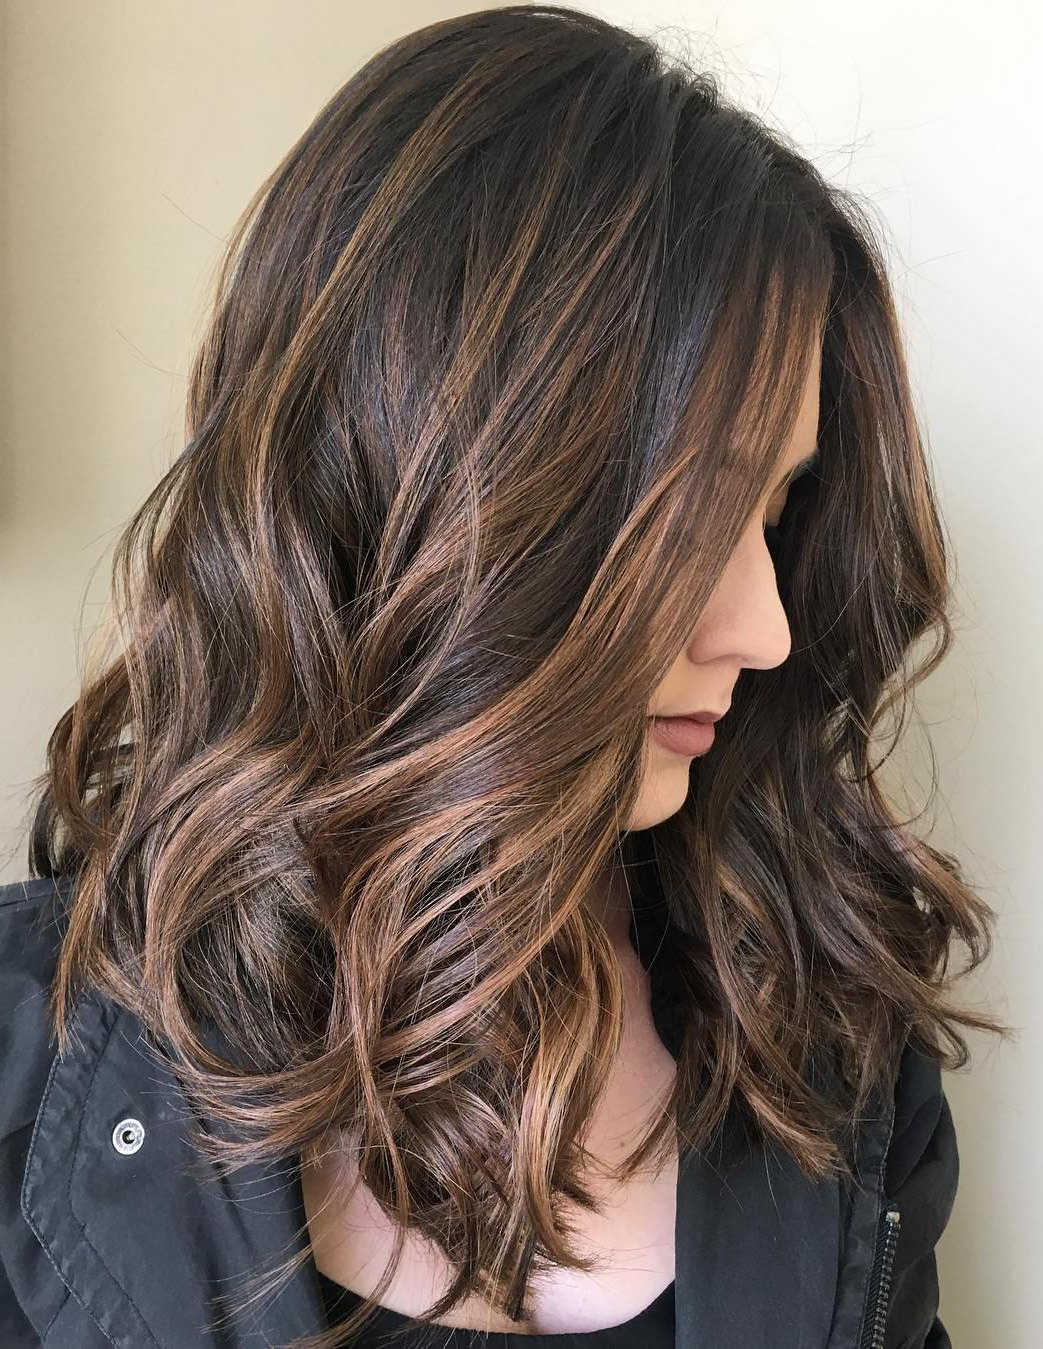 Recent Long Thick Black Hairstyles With Light Brown Balayage Inside 70 Balayage Hair Color Ideas With Blonde, Brown And Caramel Highlights (View 9 of 20)